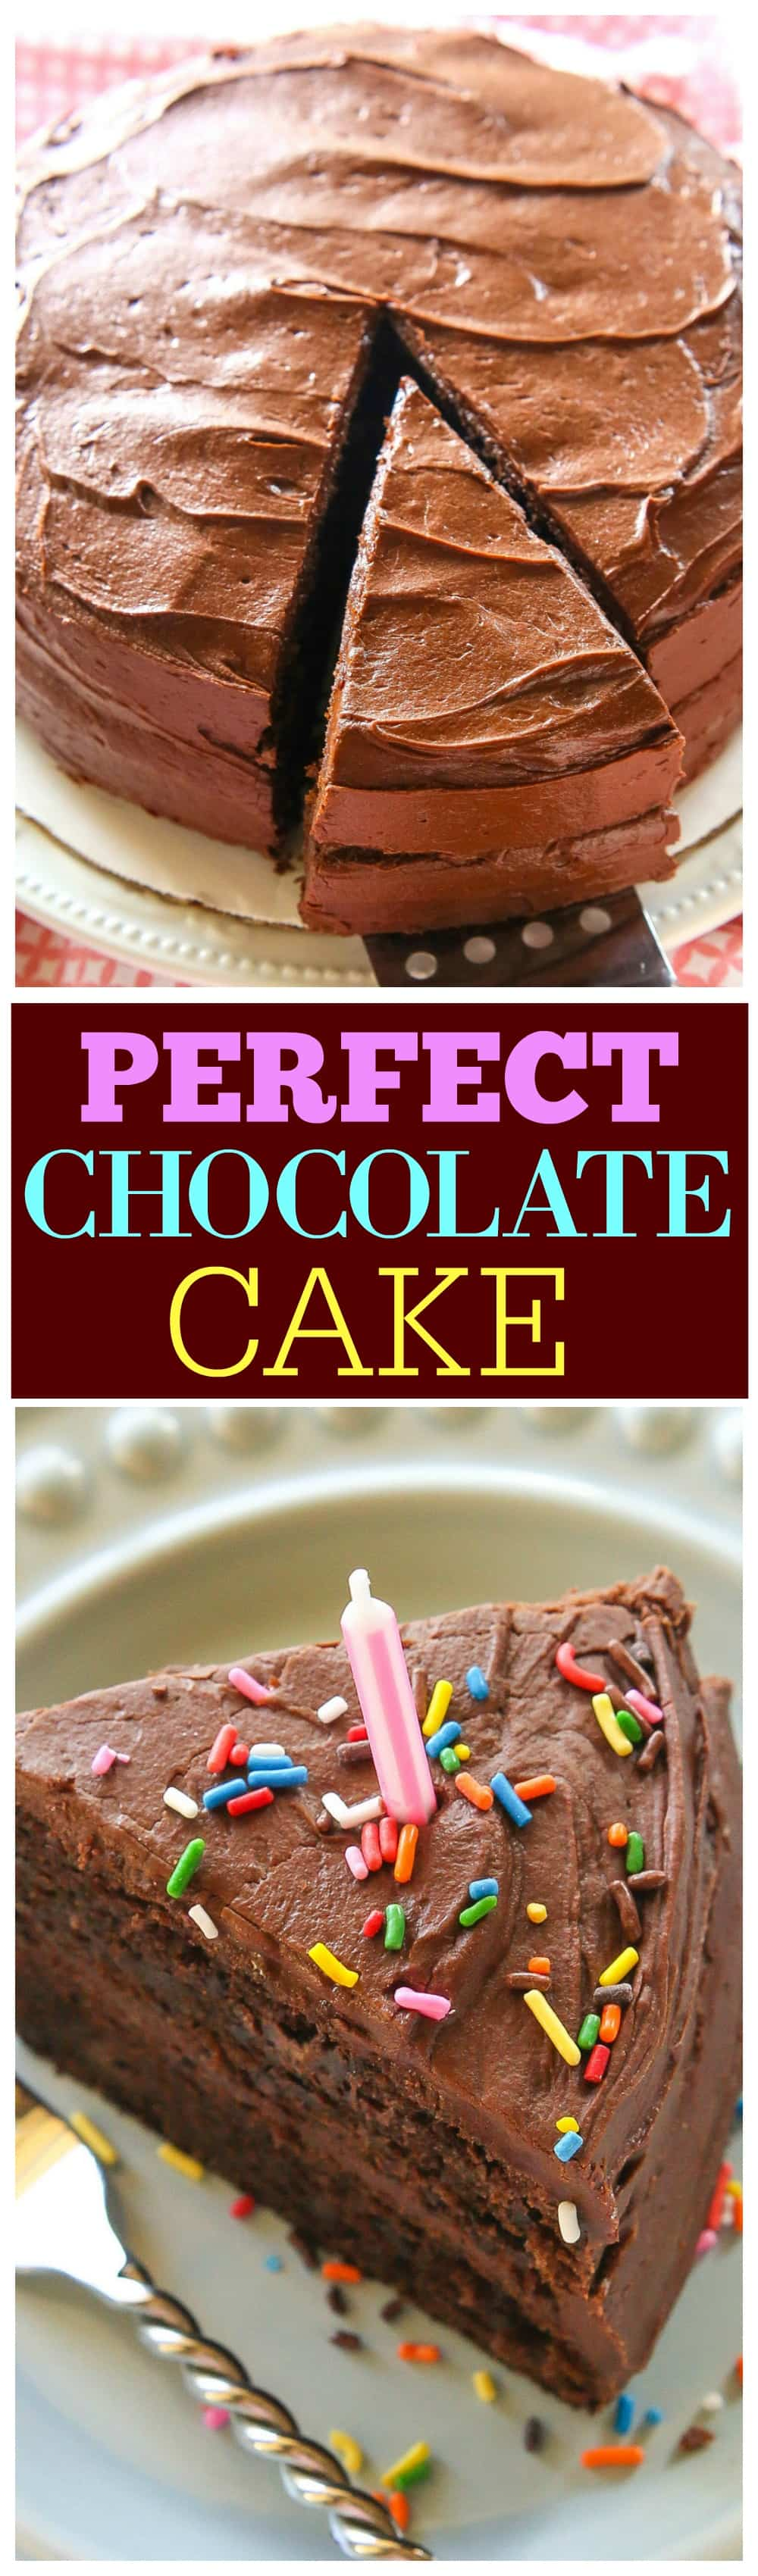 Perfect Chocolate Cake - moist with the silkiest frosting ever! #hersheys #perfectly #chocolate #cake #recipe #easy #frosting